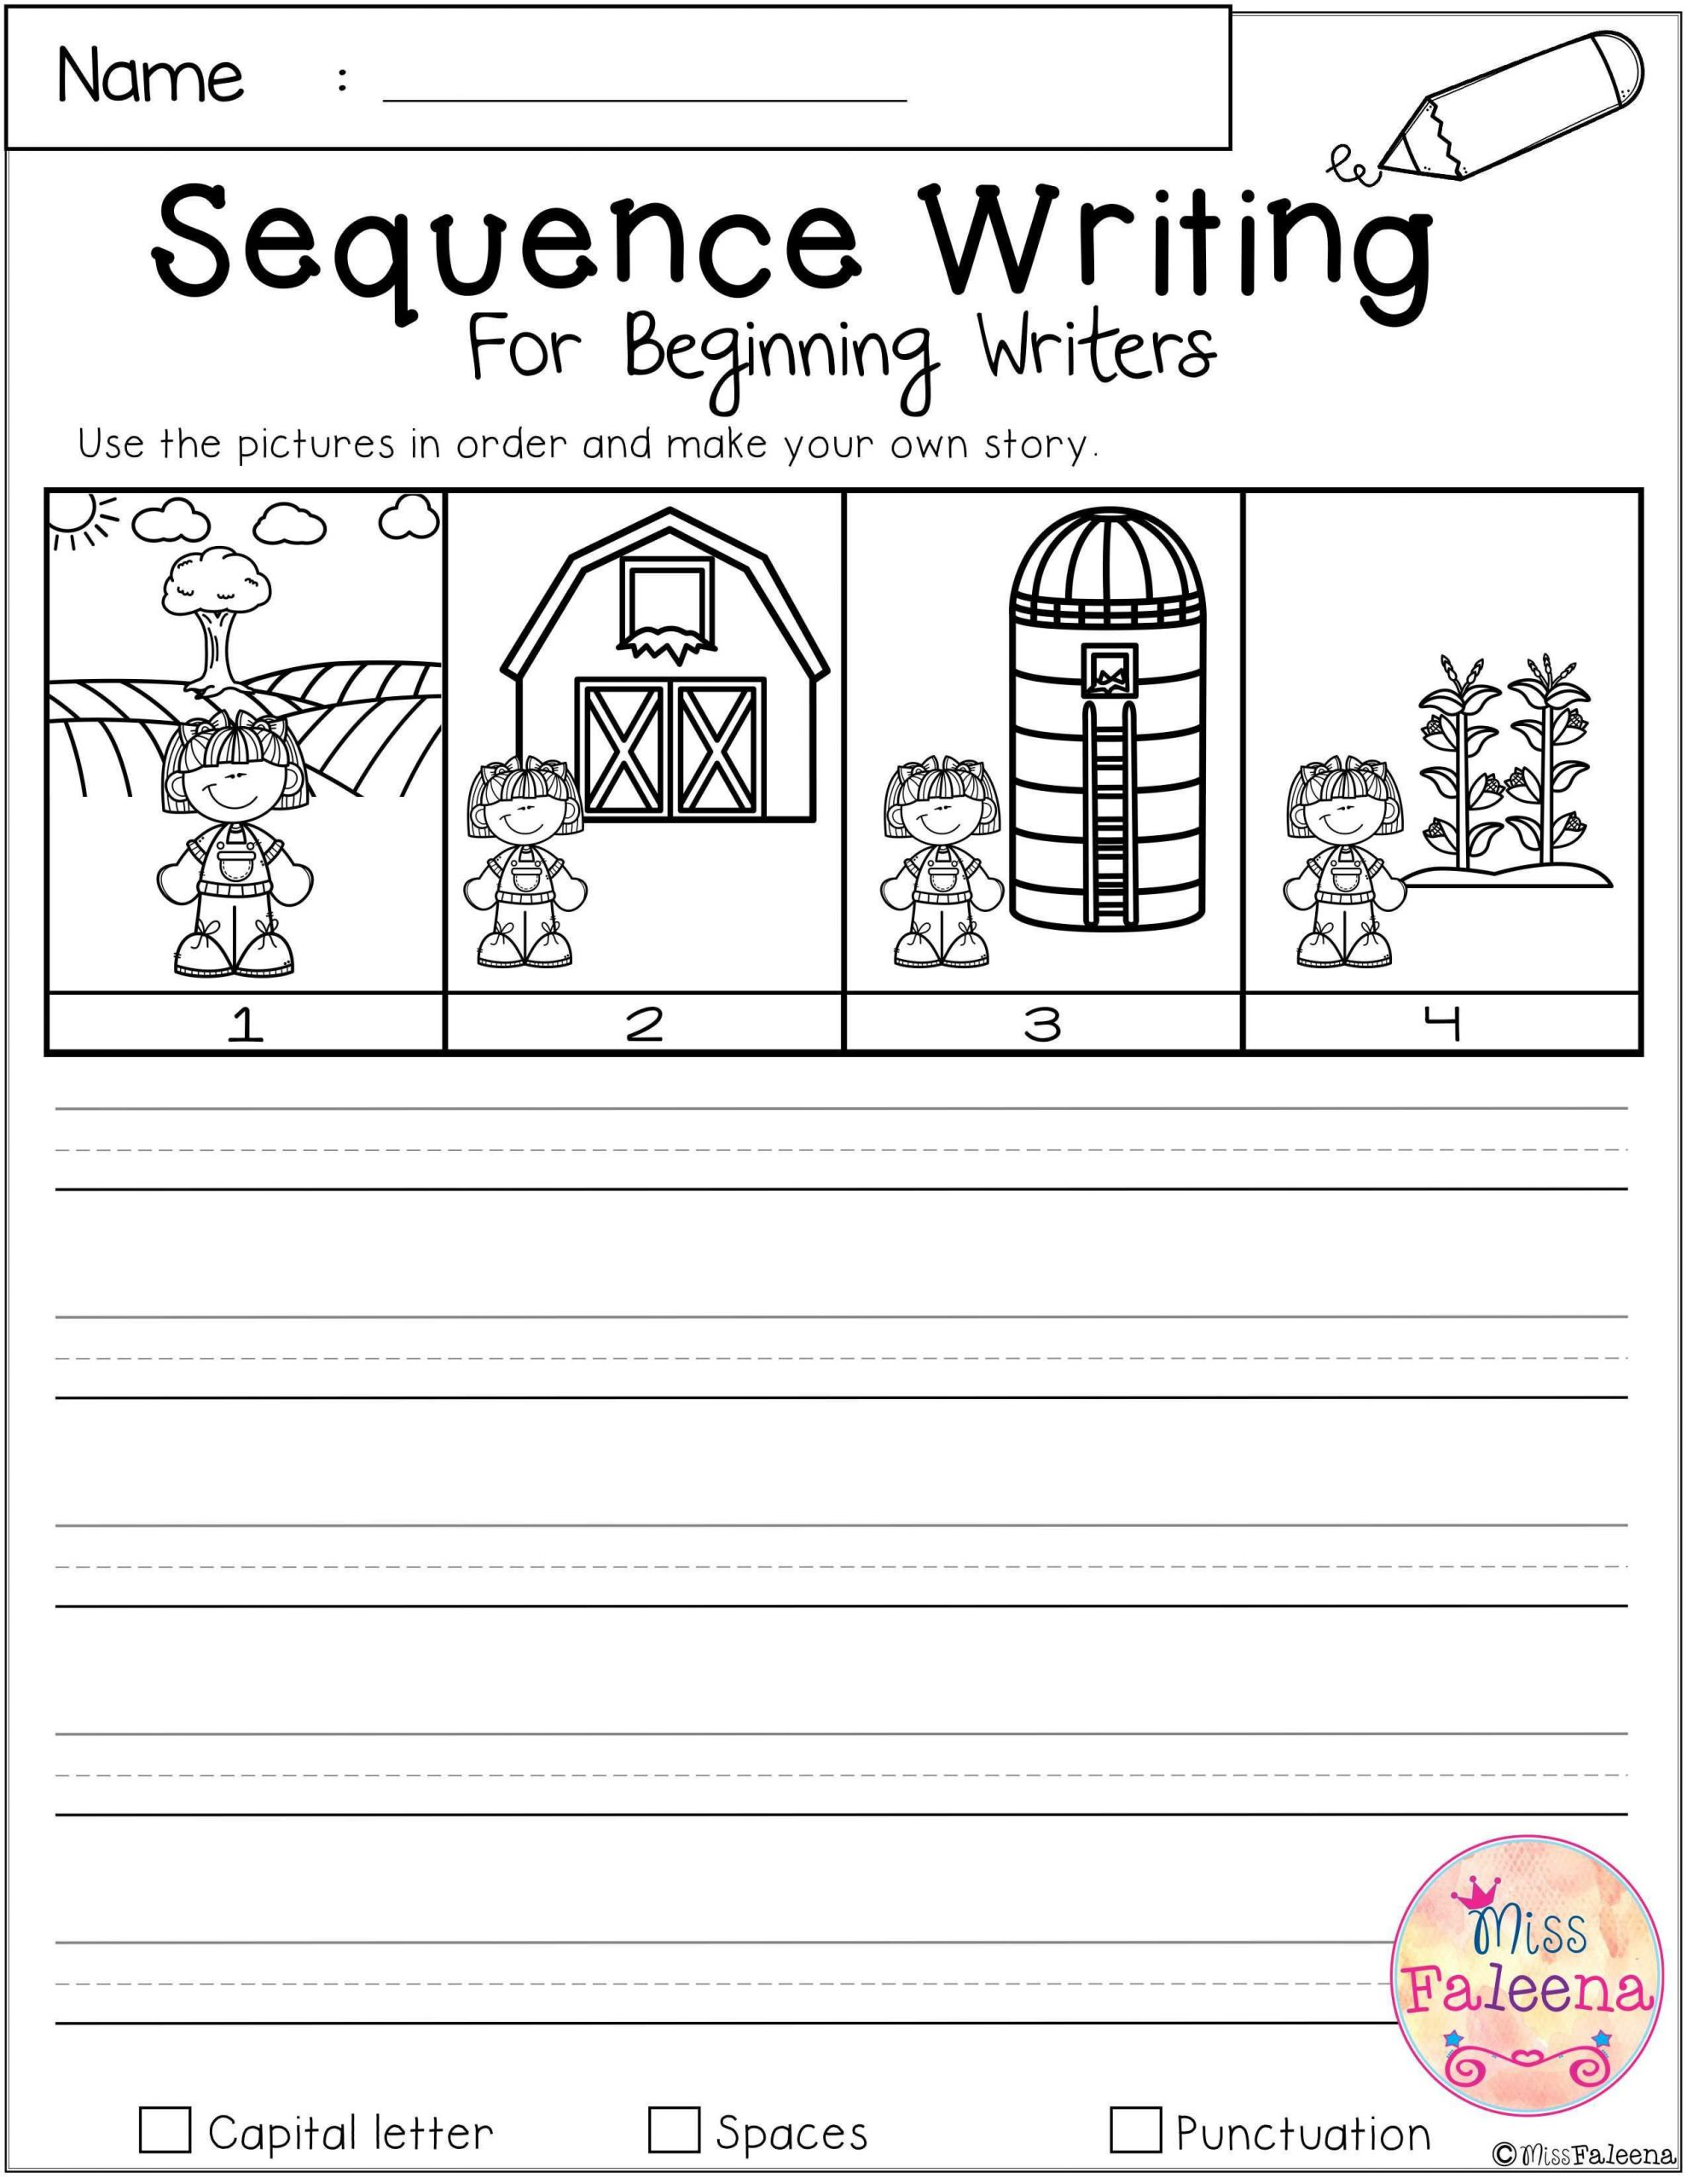 Sequencing Worksheets 4th Grade Free Sequence Writing for Beginning Writers